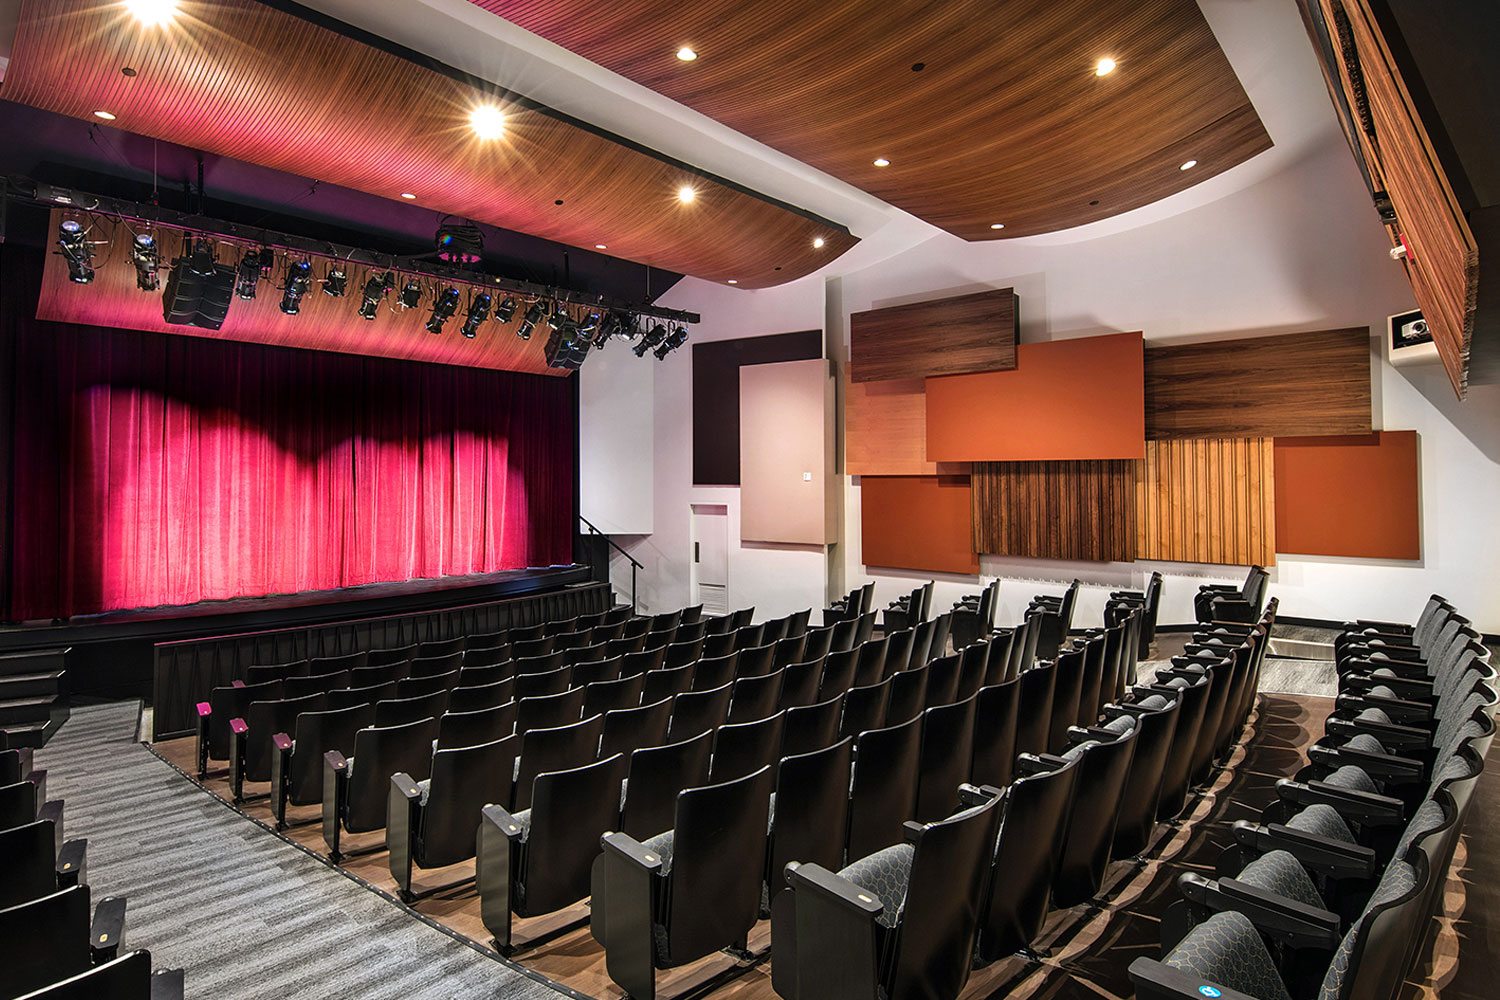 The Herb Alpert Foundation engaged WSDG to design the acoustics for a small on-campus live performance theater at the prestigious UCLA, with help of Lani Hall. Theater side view with red curtain.